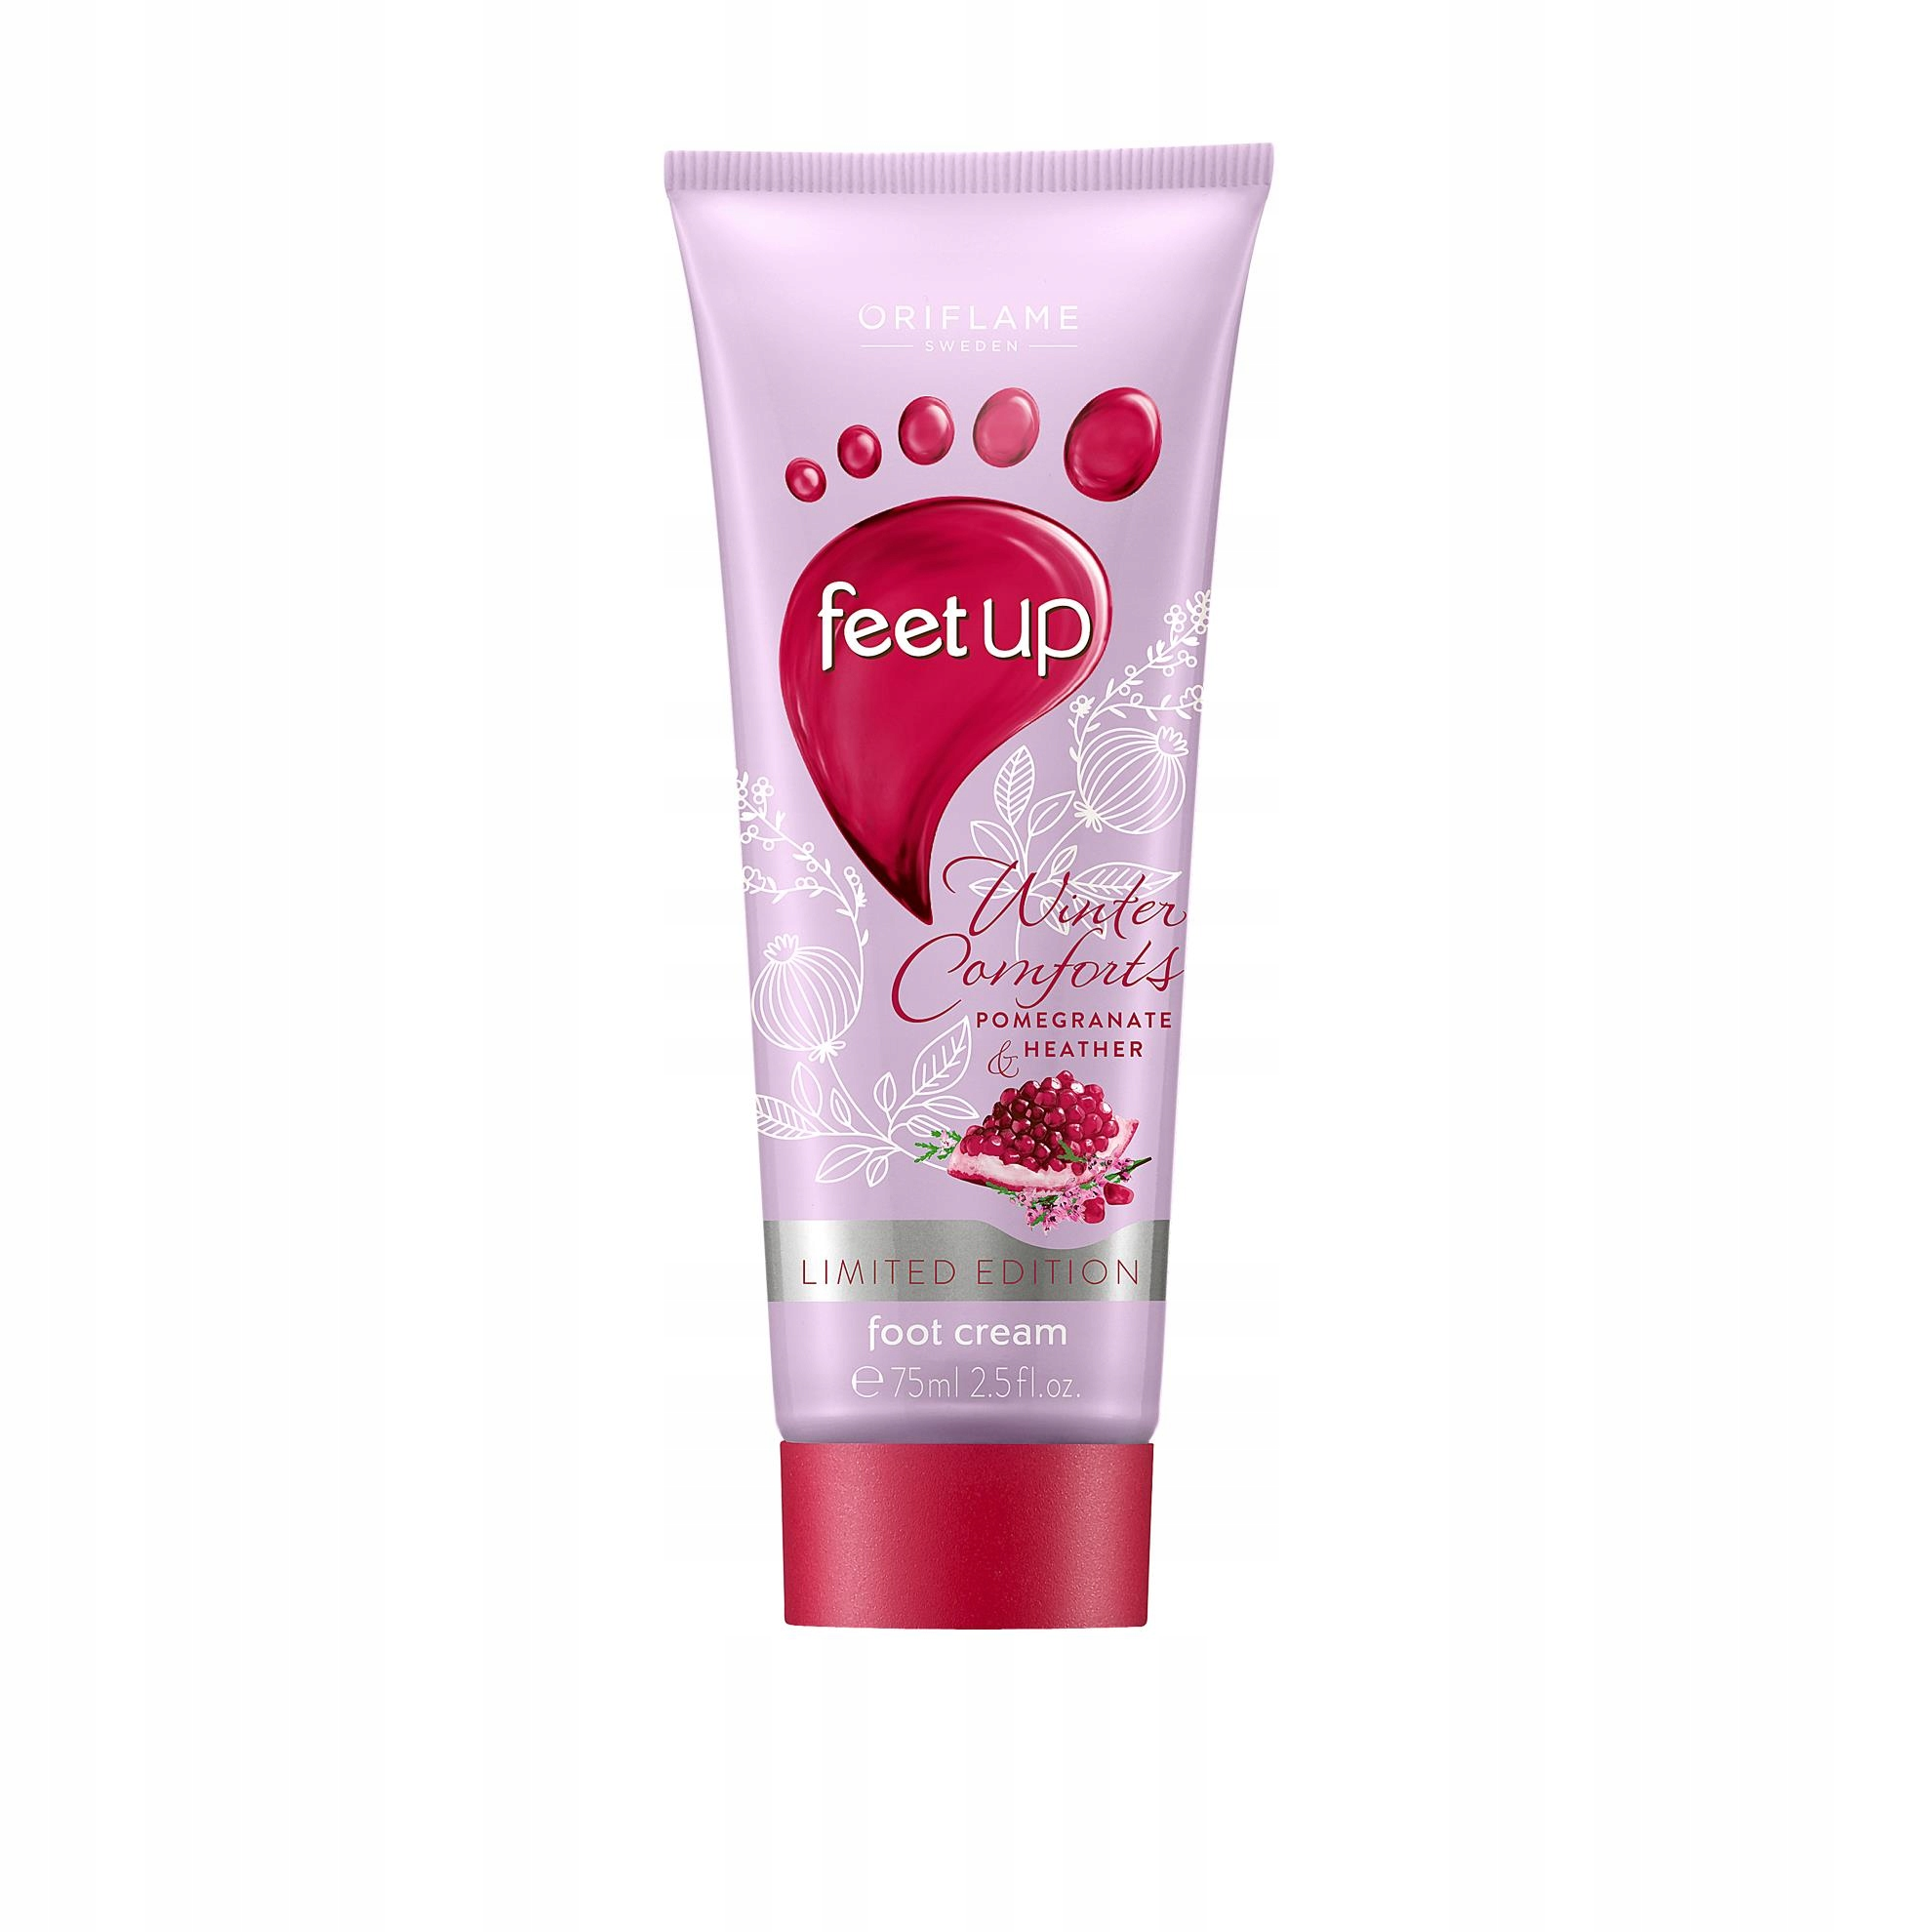 Krem do stóp z granatem i wrzosem Feet Up Oriflame